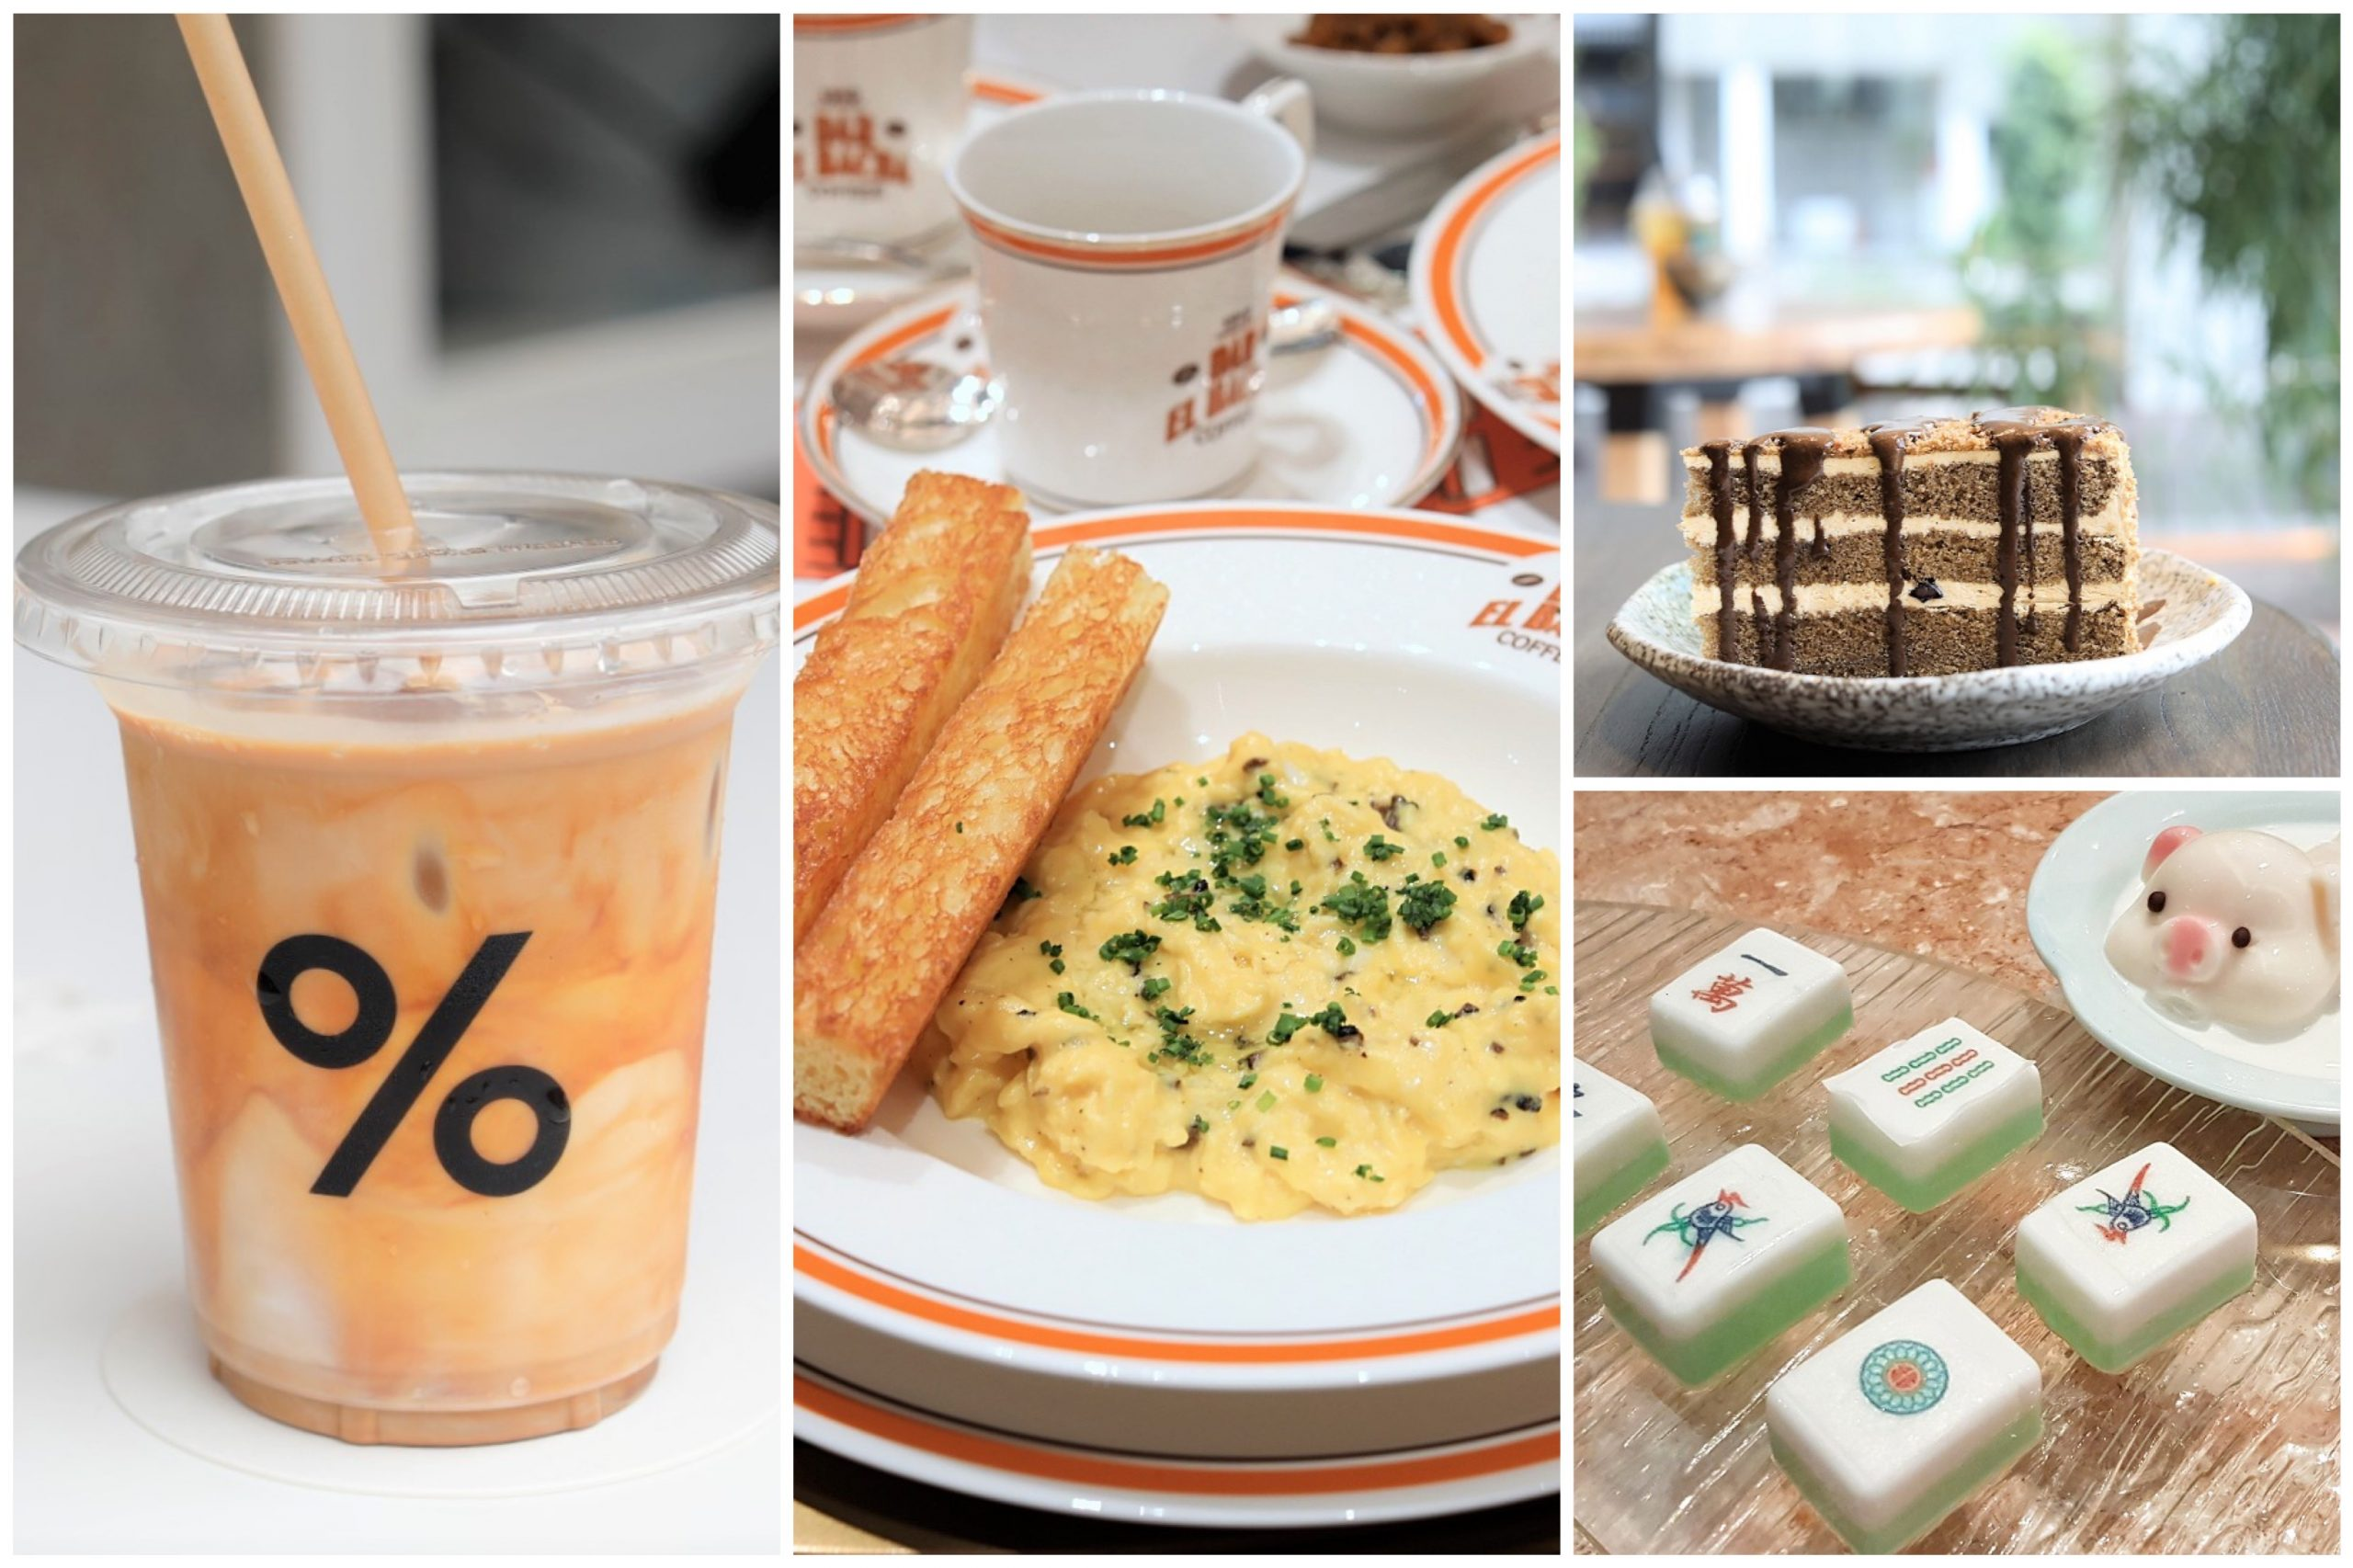 12 Orchard Road Cafes From Rooftop Garden Coffee Place To Korean Cafe Opened 24 7 Danielfooddiary Com